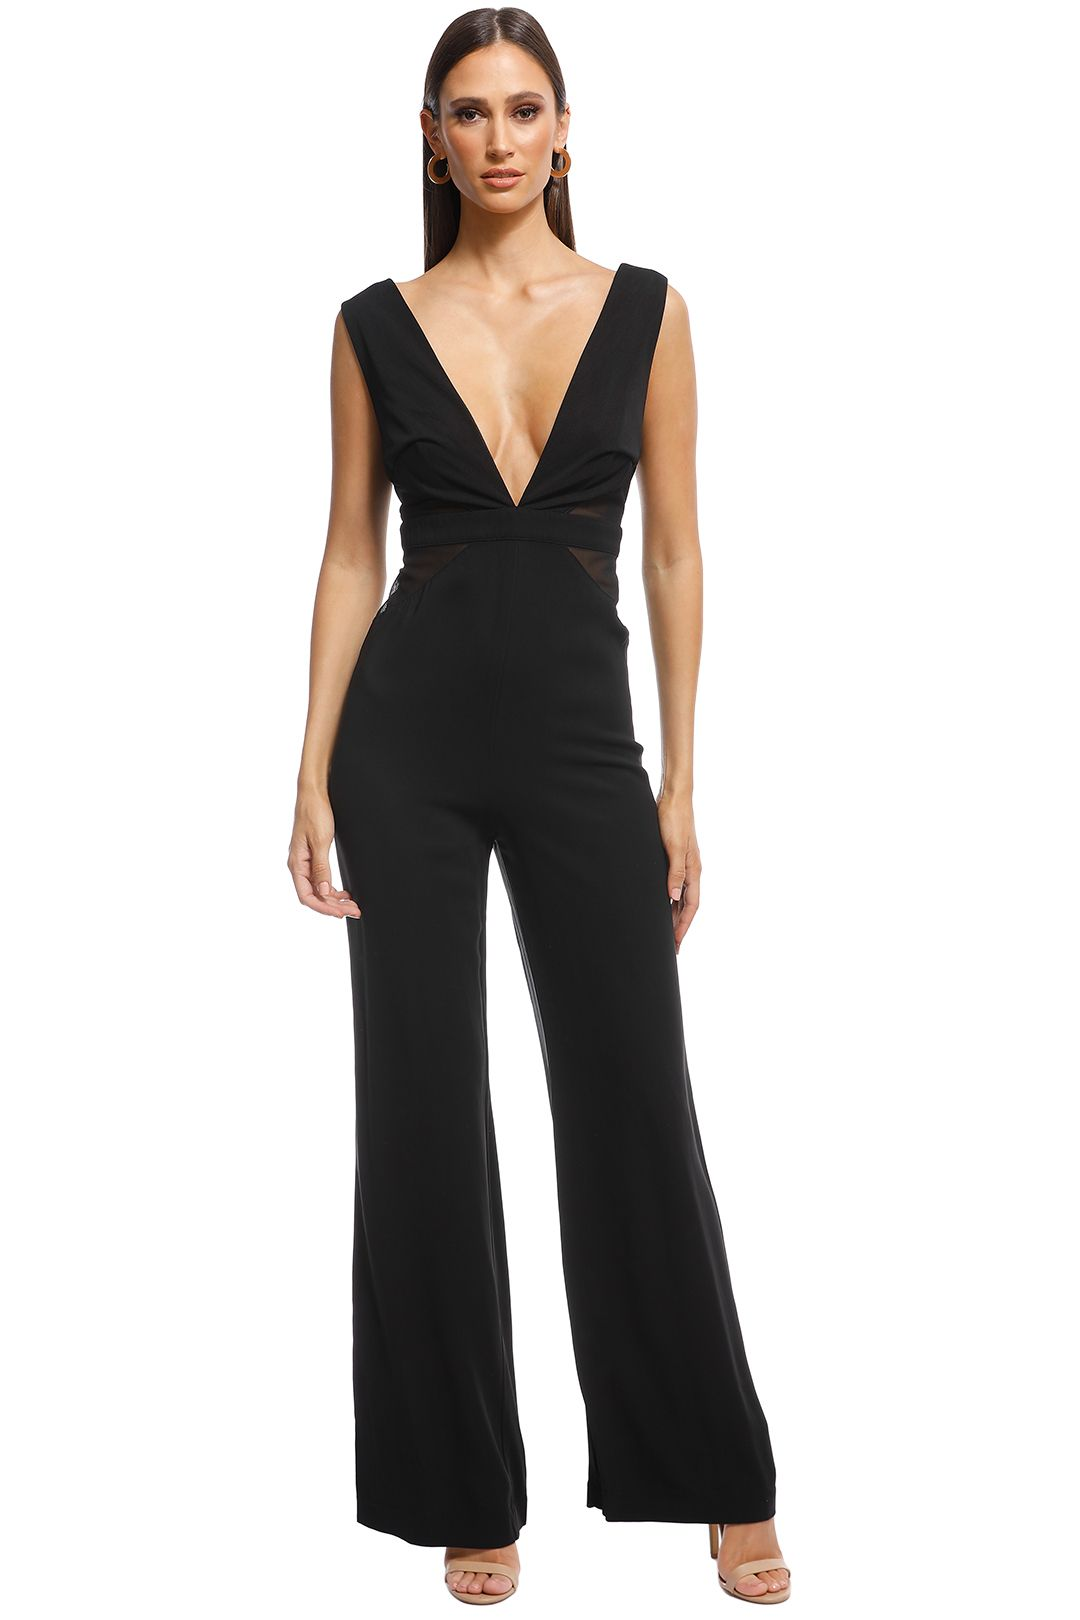 Talulah - Staccato Contrast Jumpsuit - Black - FRont